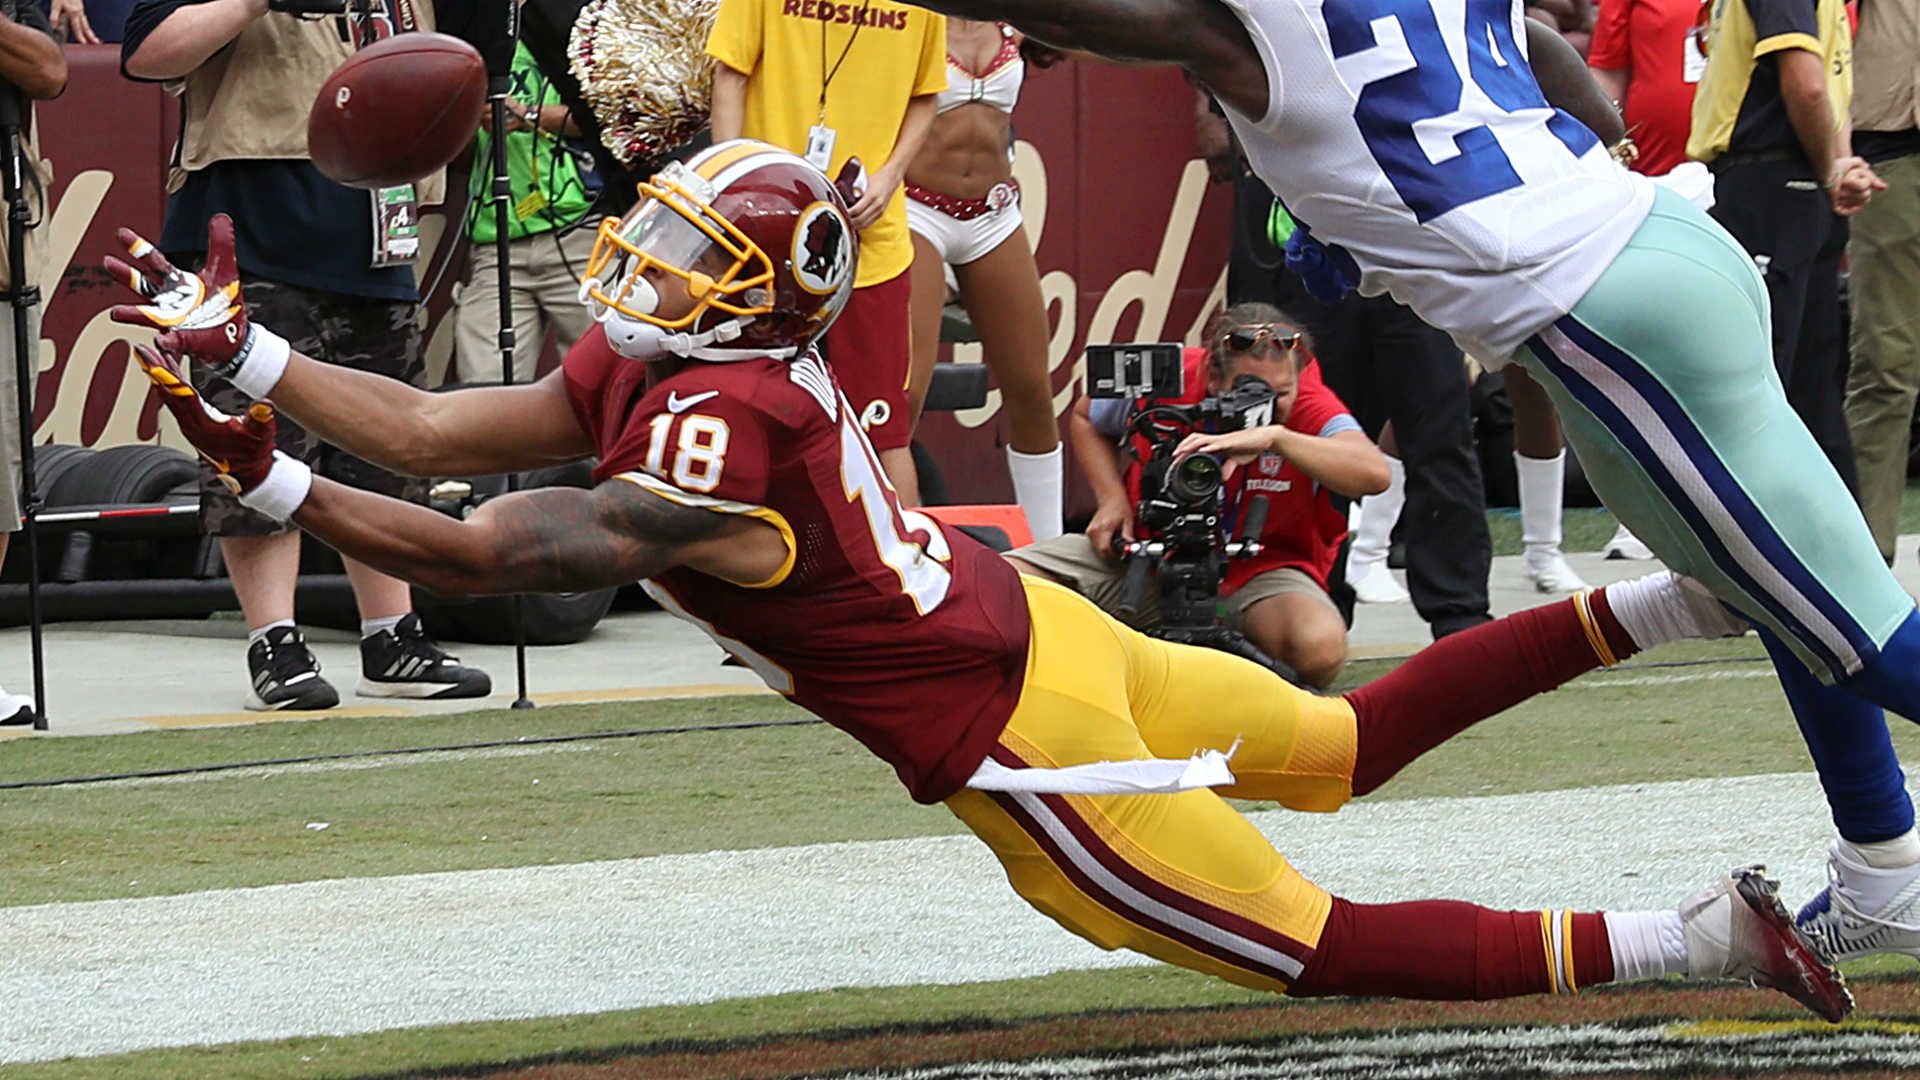 Washington Redskins receiver makes leaping 1-handed catch for touchdown